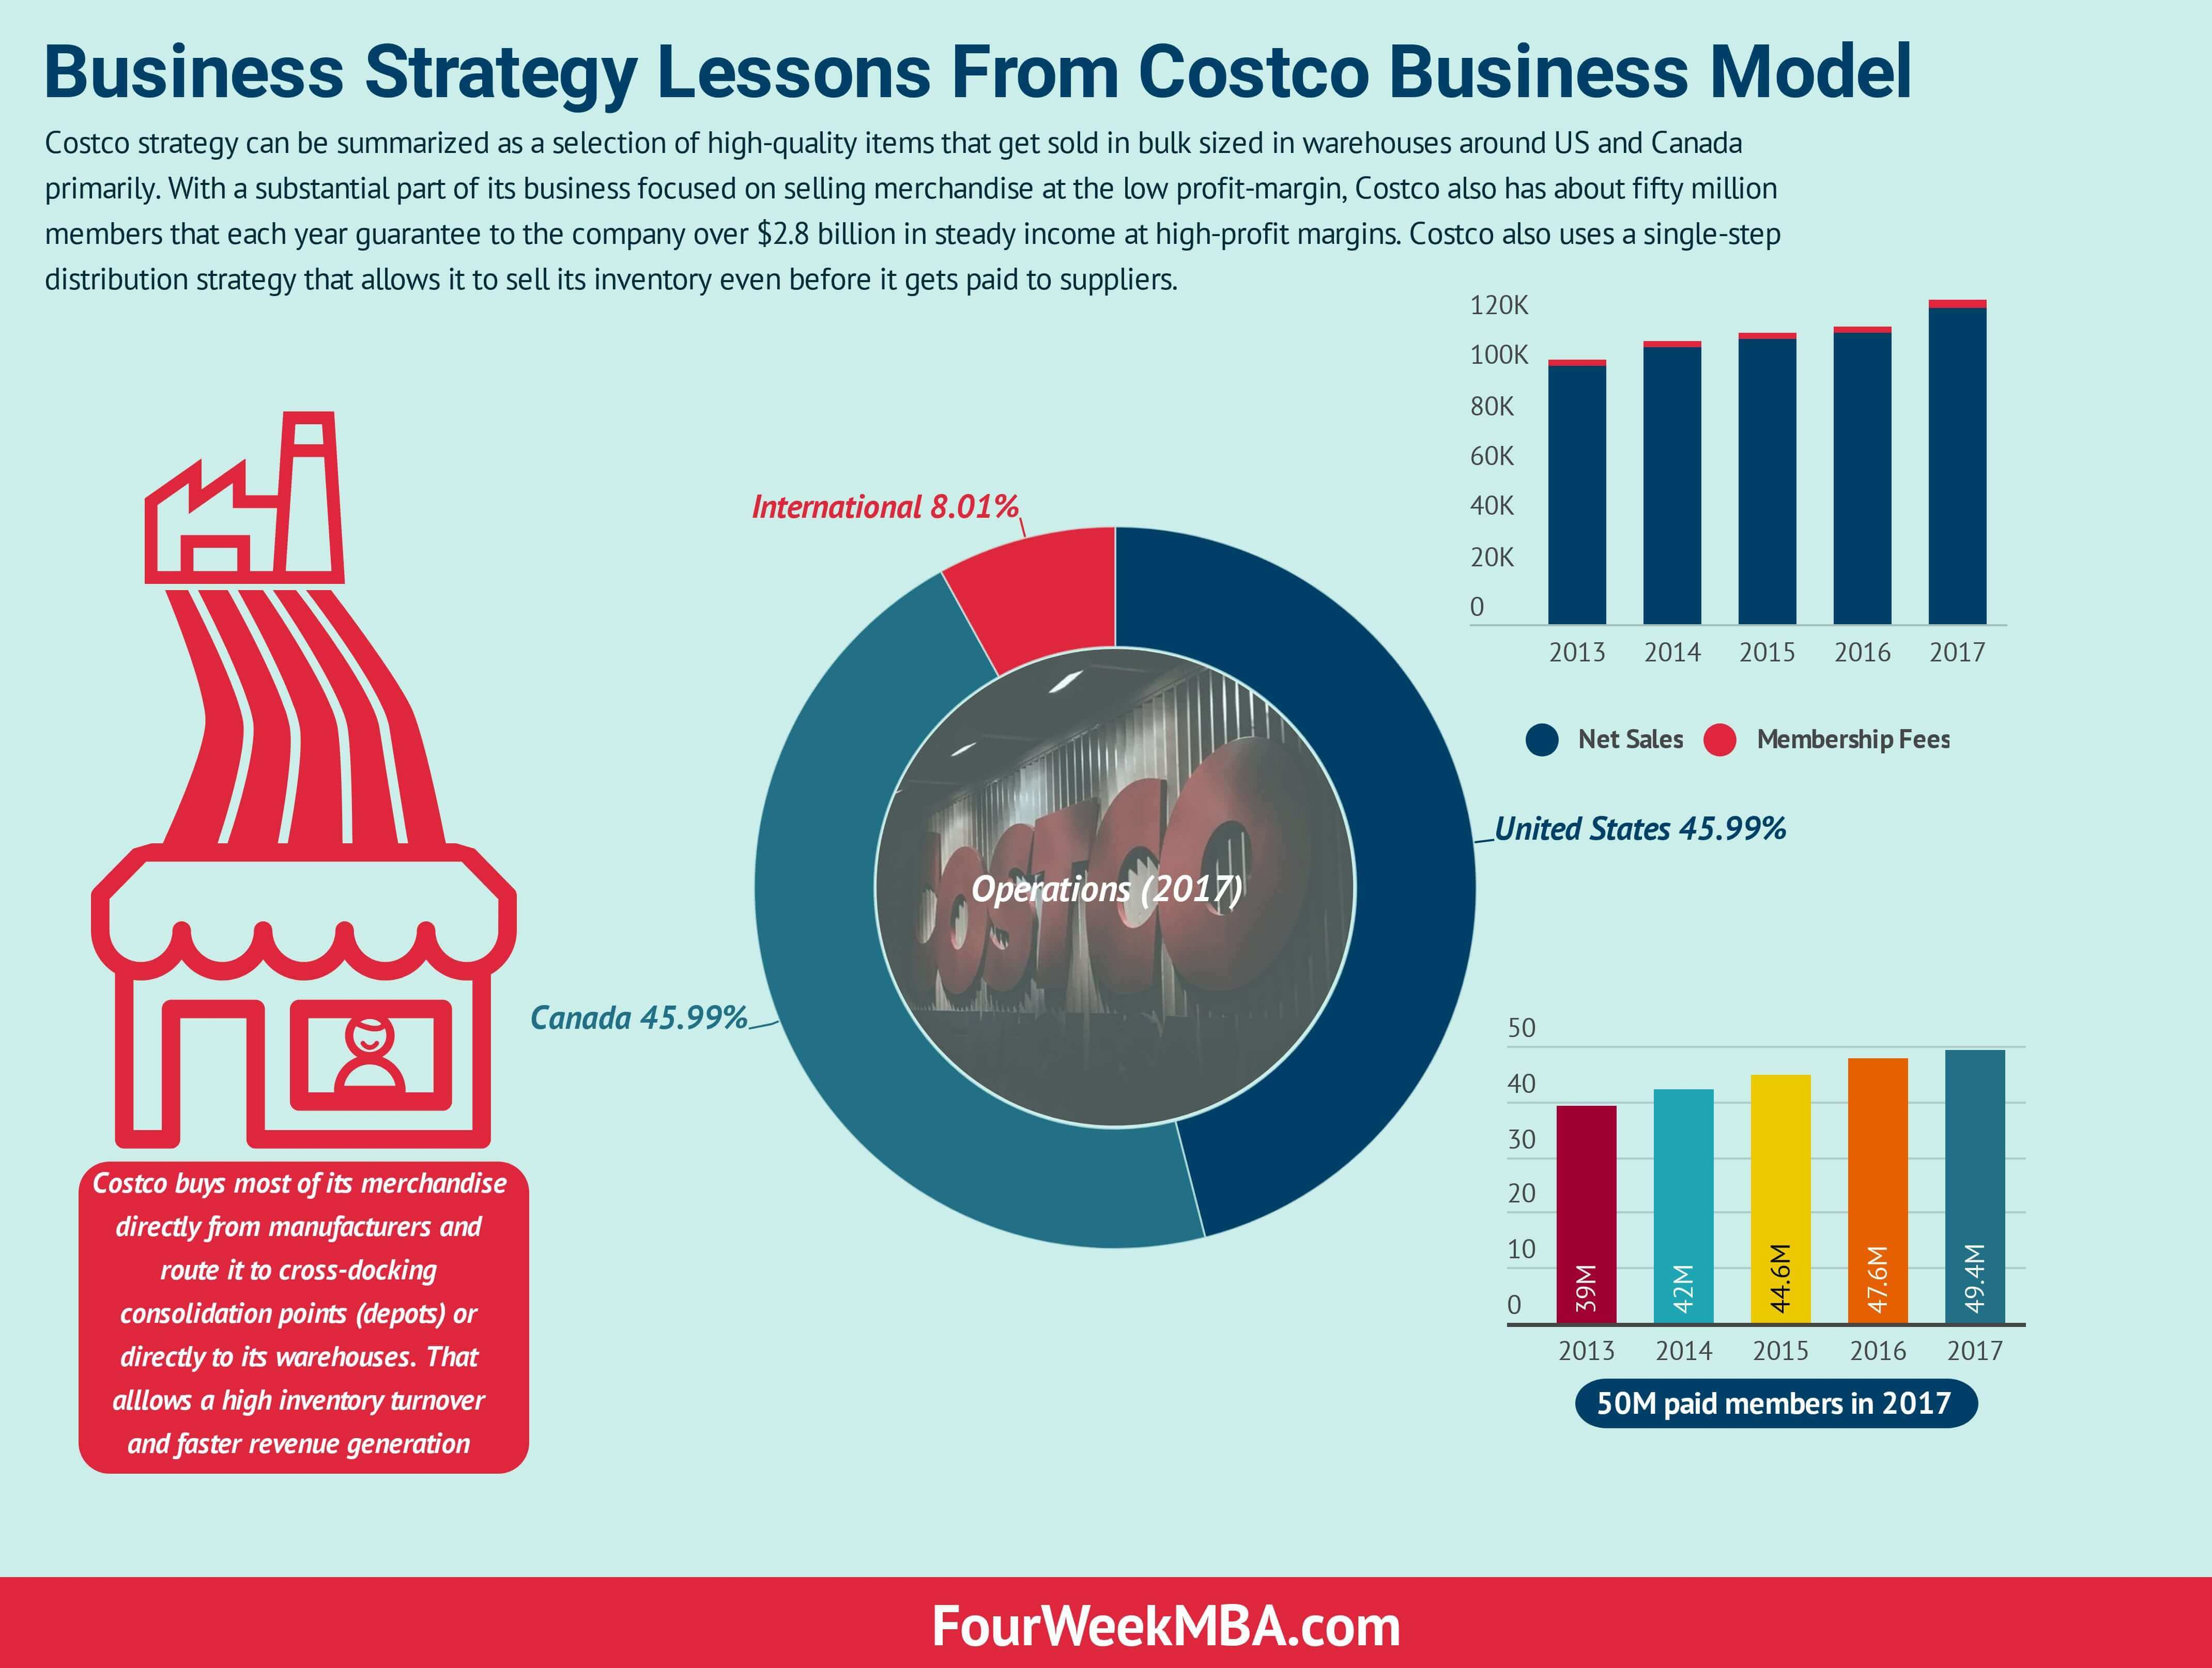 Business Strategy Lessons From Costco Business Model